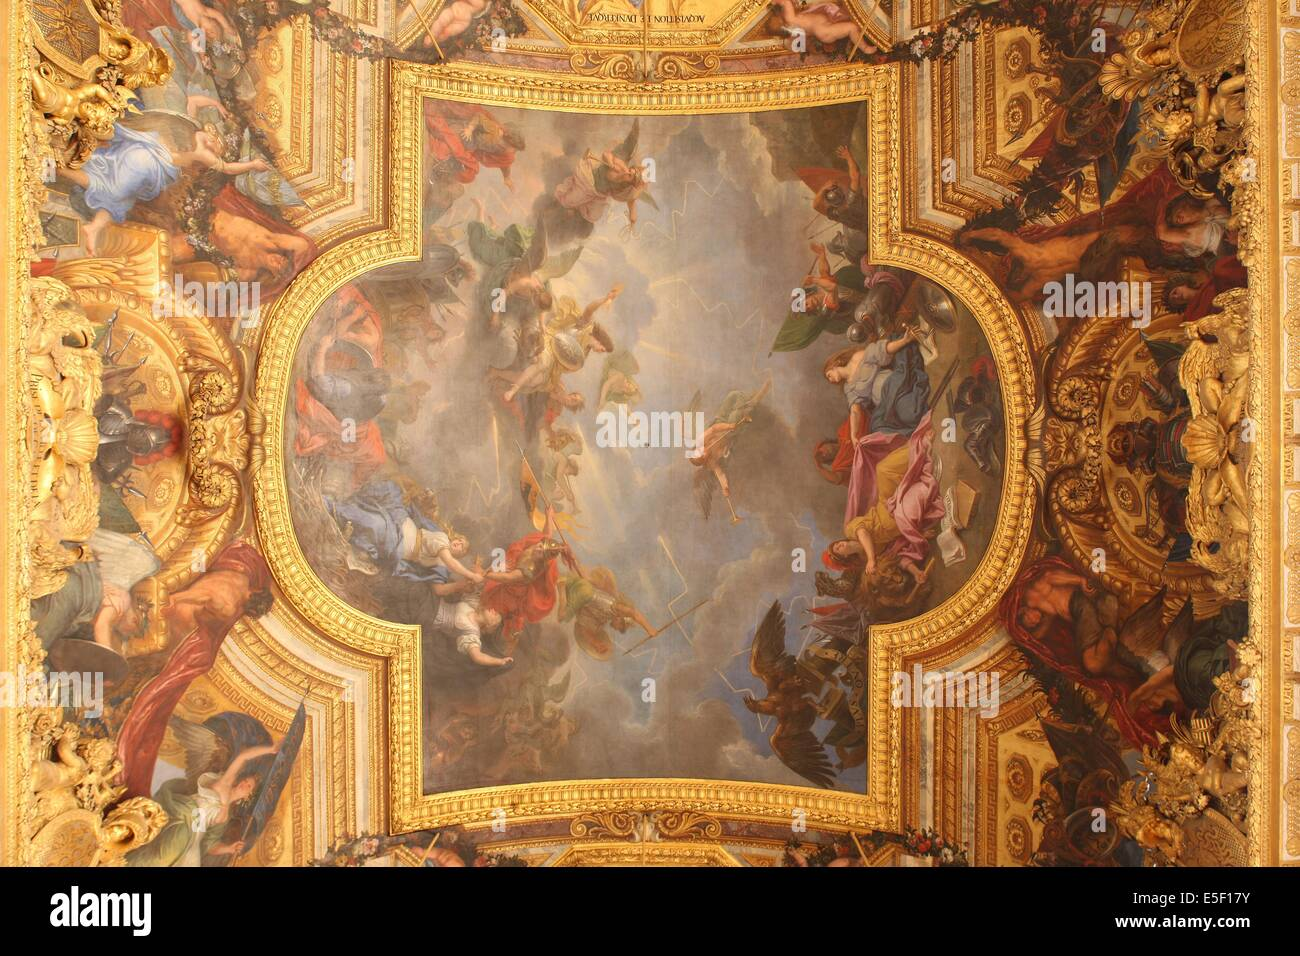 ceiling hall mirrors versailles palace stockfotos ceiling hall mirrors versailles palace. Black Bedroom Furniture Sets. Home Design Ideas